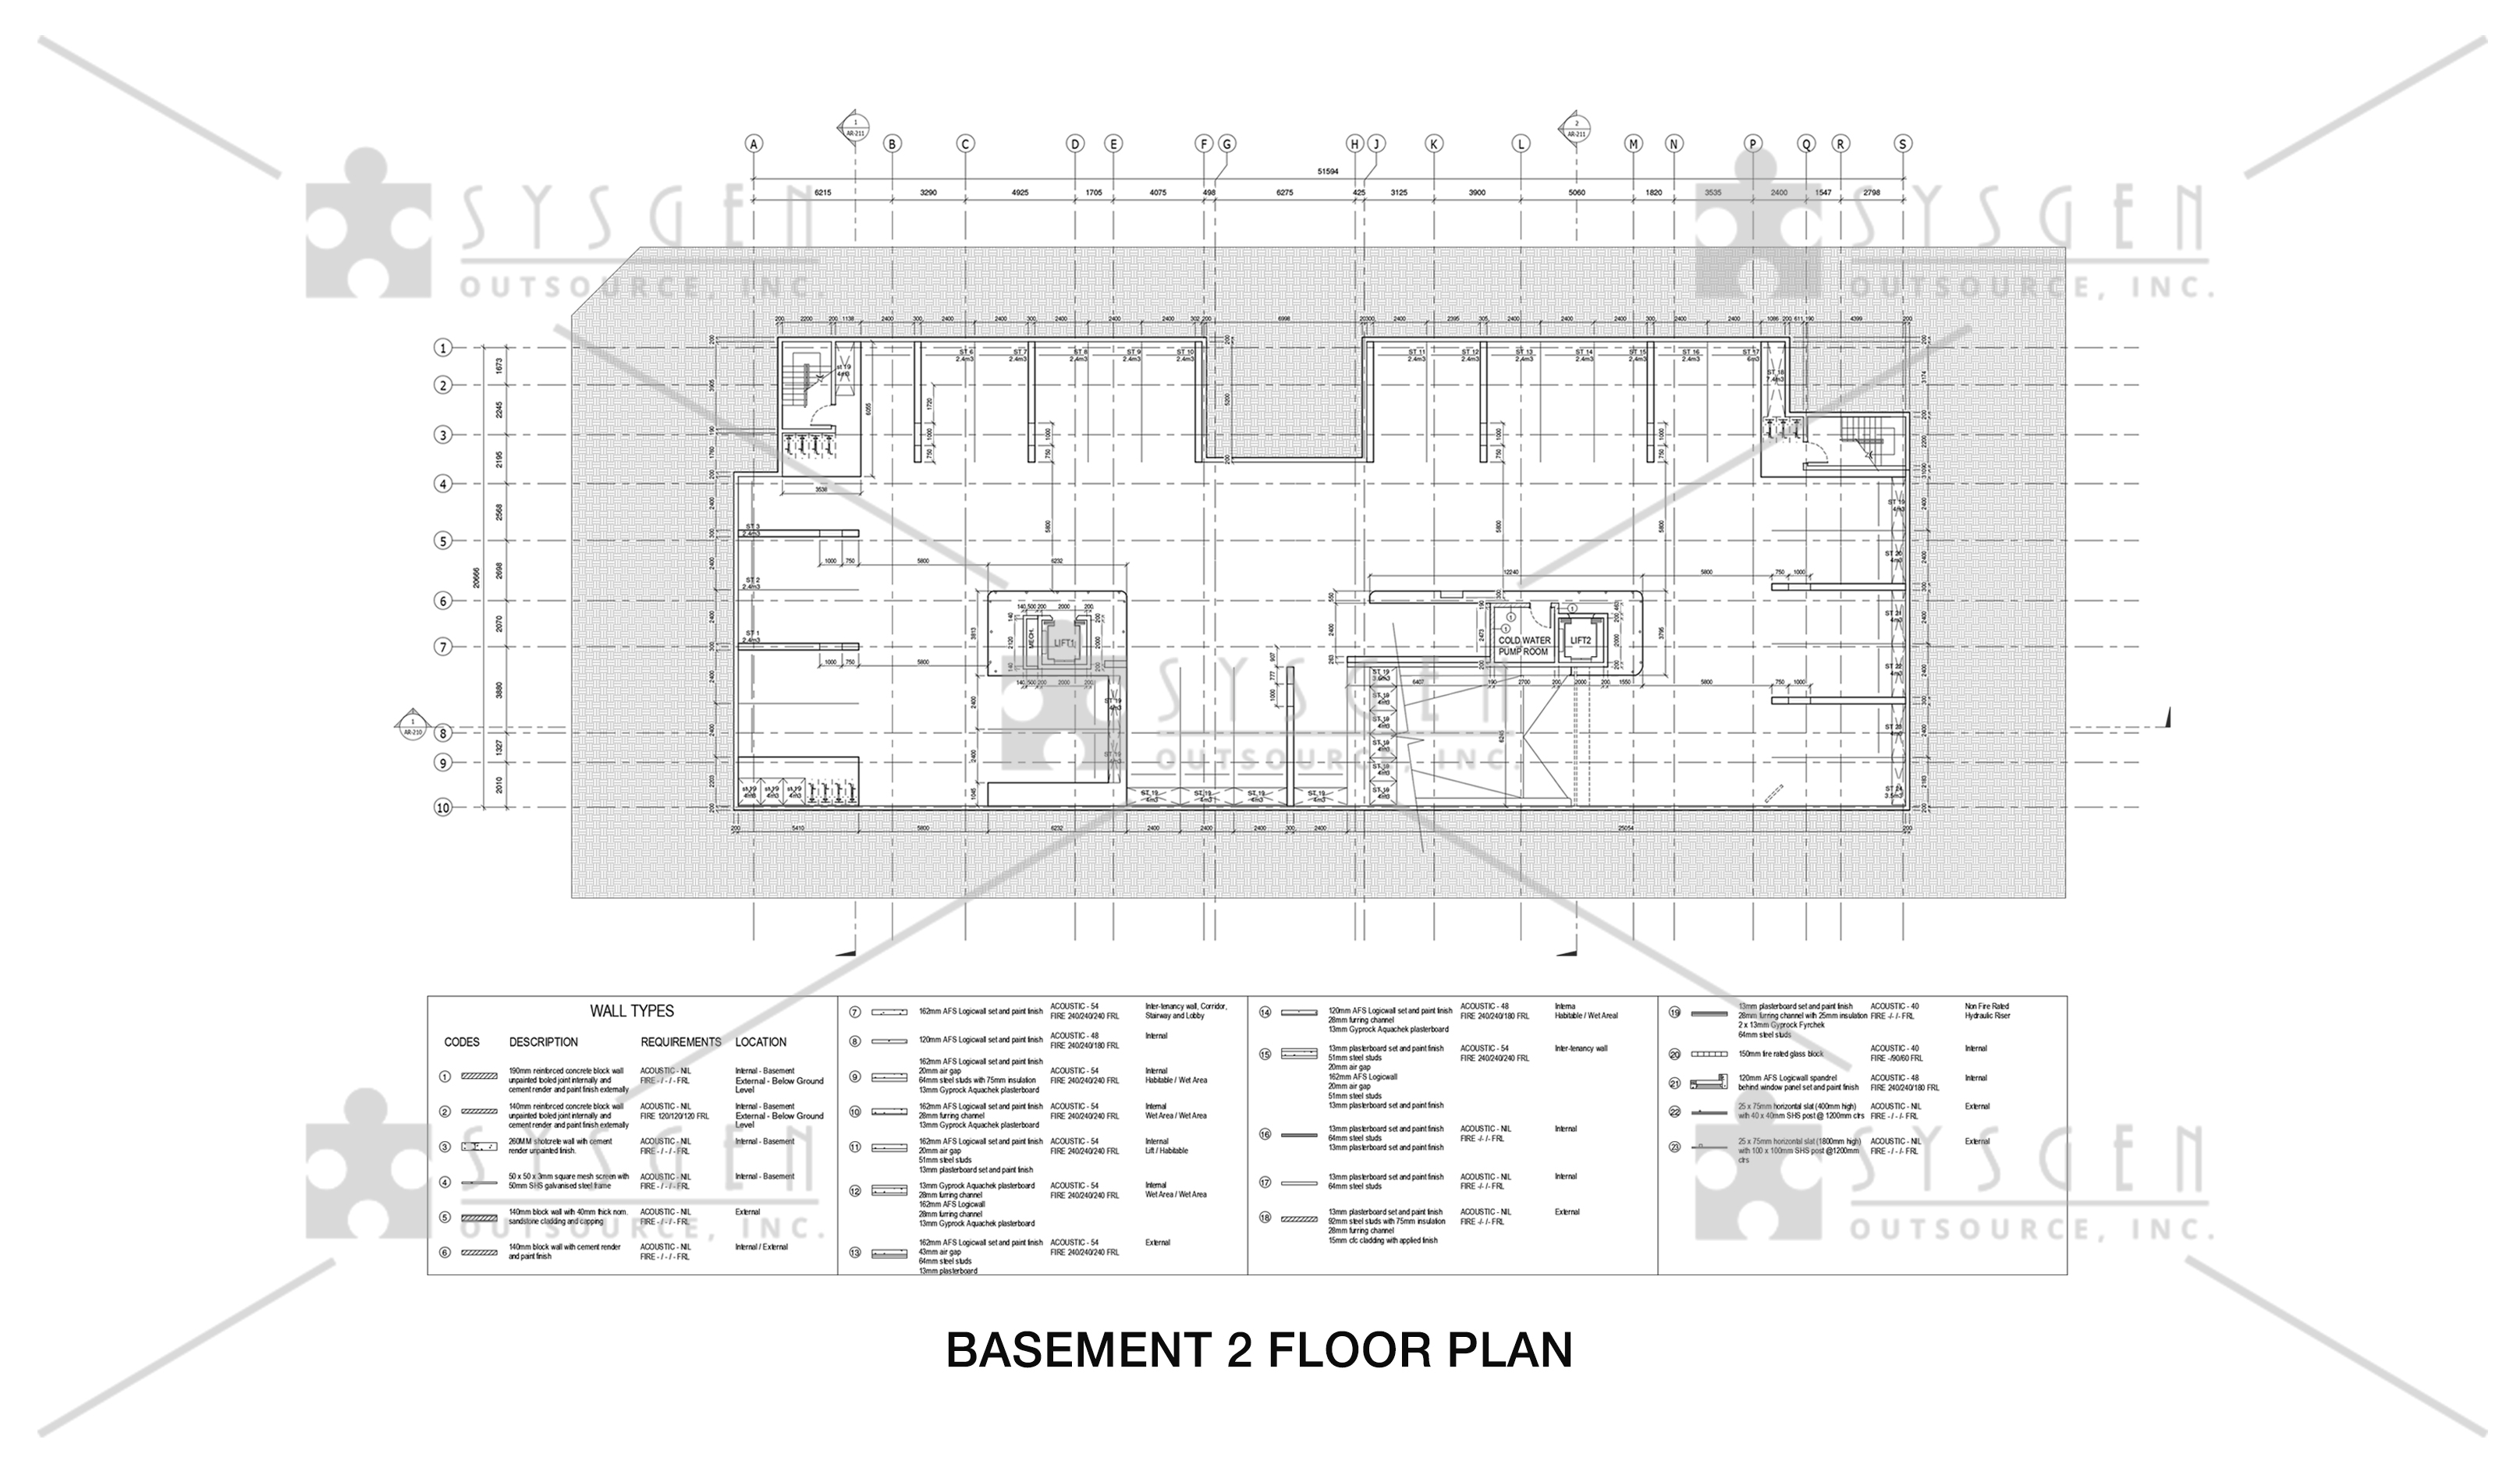 sysgen-outsource-cad-outsourcing-services-cad-conversion-revit-4-storey-residential2